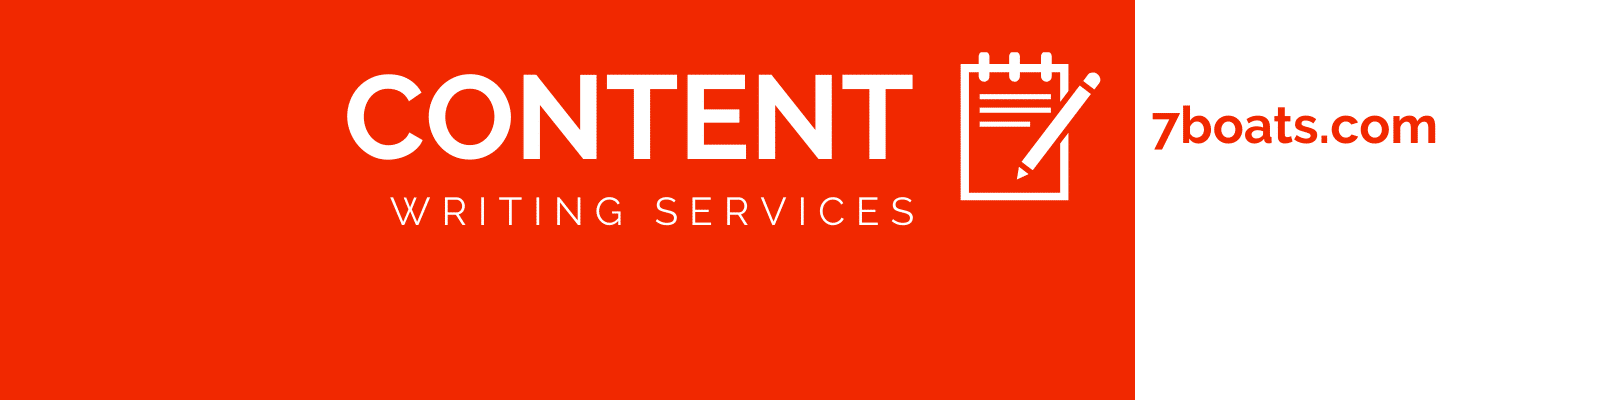 Content Writing Services by 7boats.com